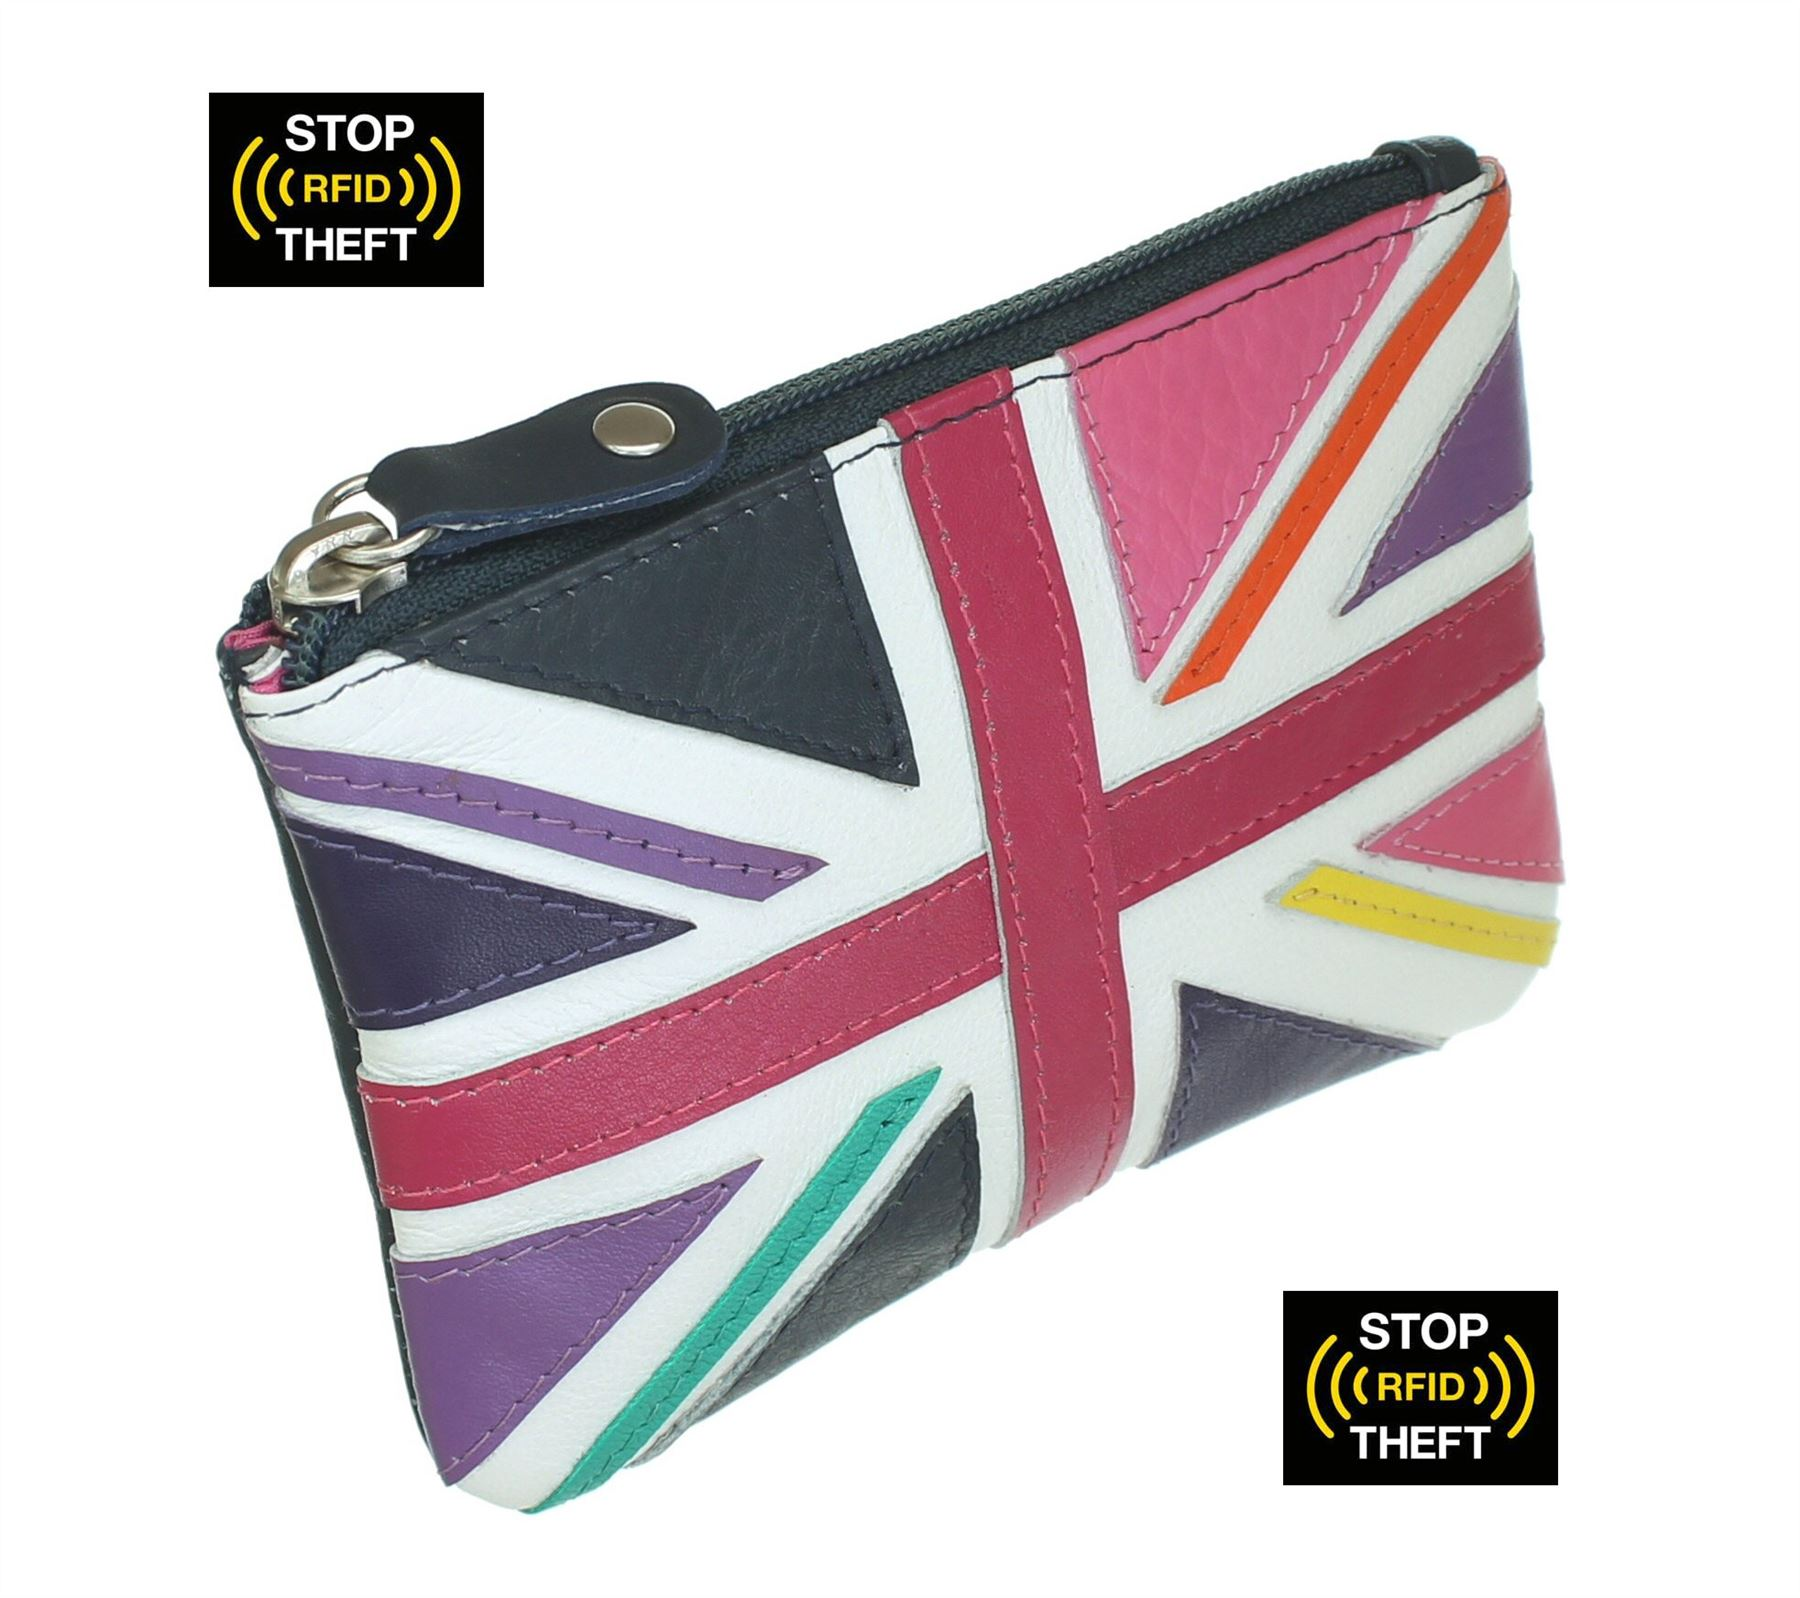 Mala Leather zip top lucy RFID protect coin purse with zip top and pocket 468 30